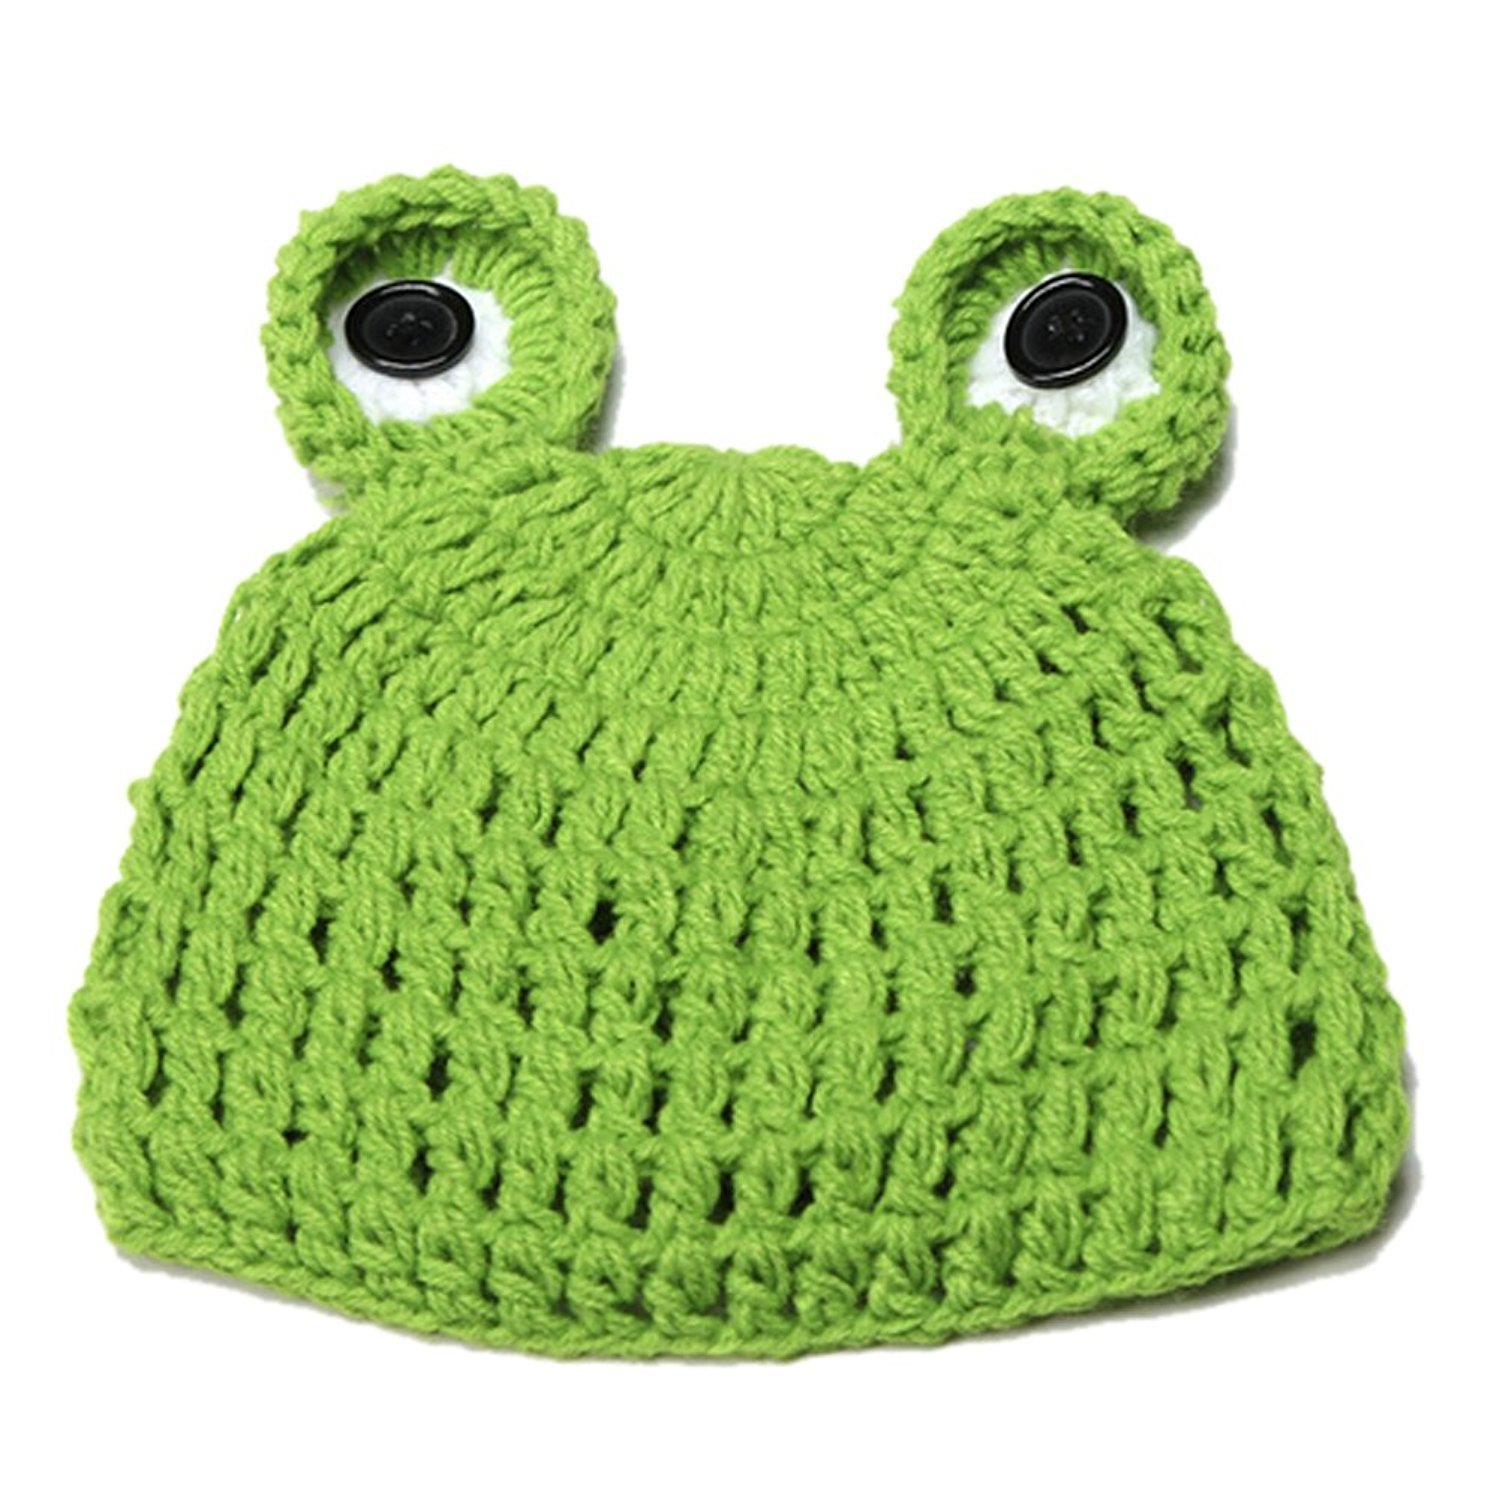 TOOGOO(R) Kids Handmade newborn Baby infant boy prince Girl Animal Beanie photography Props knitted caps & hats-Frog 041461A5